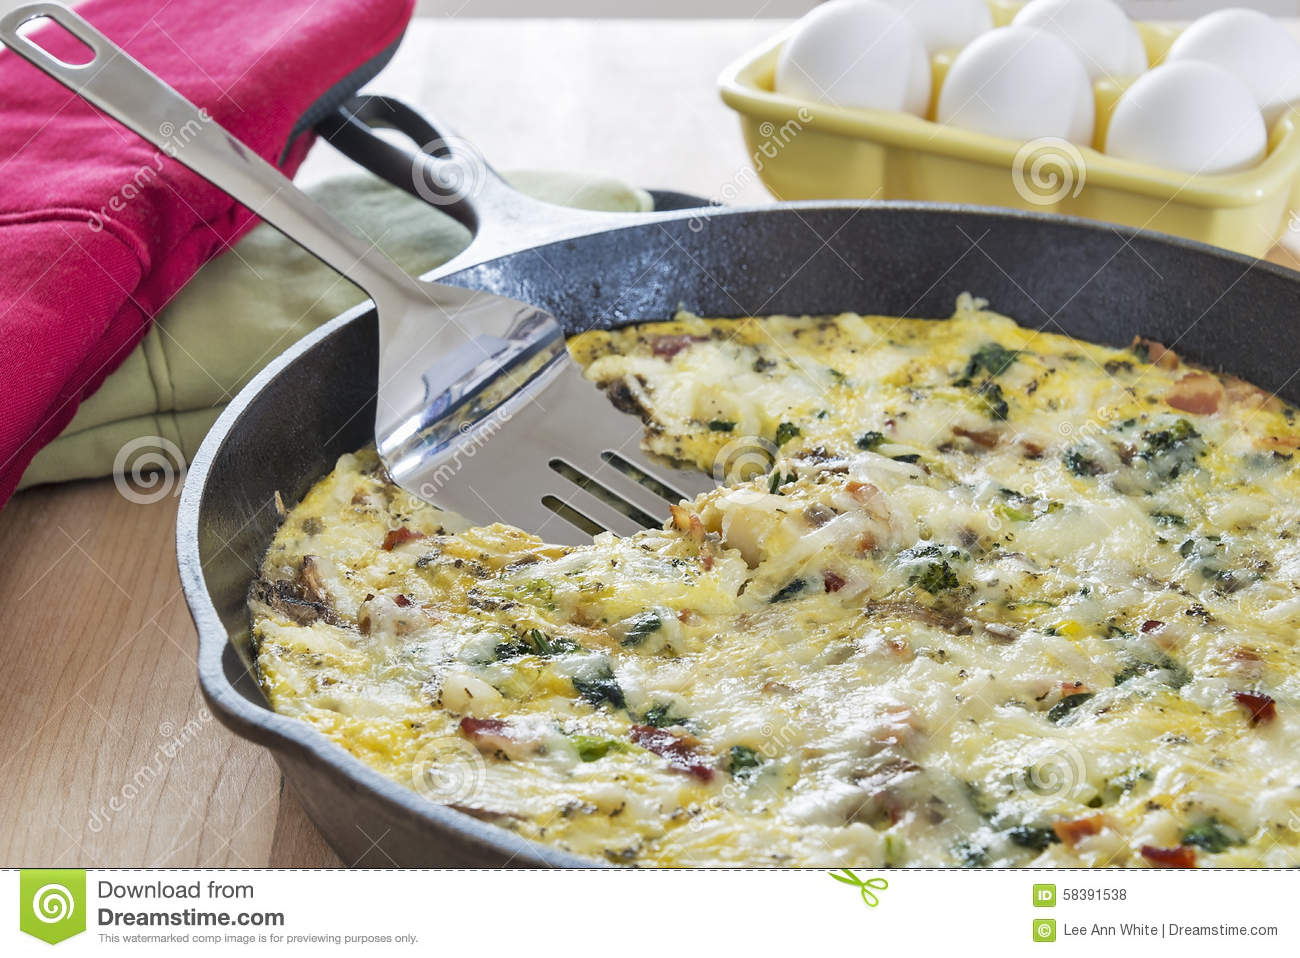 Homemade Fritata Made With Broccoli, Bacon, Spinach And ...